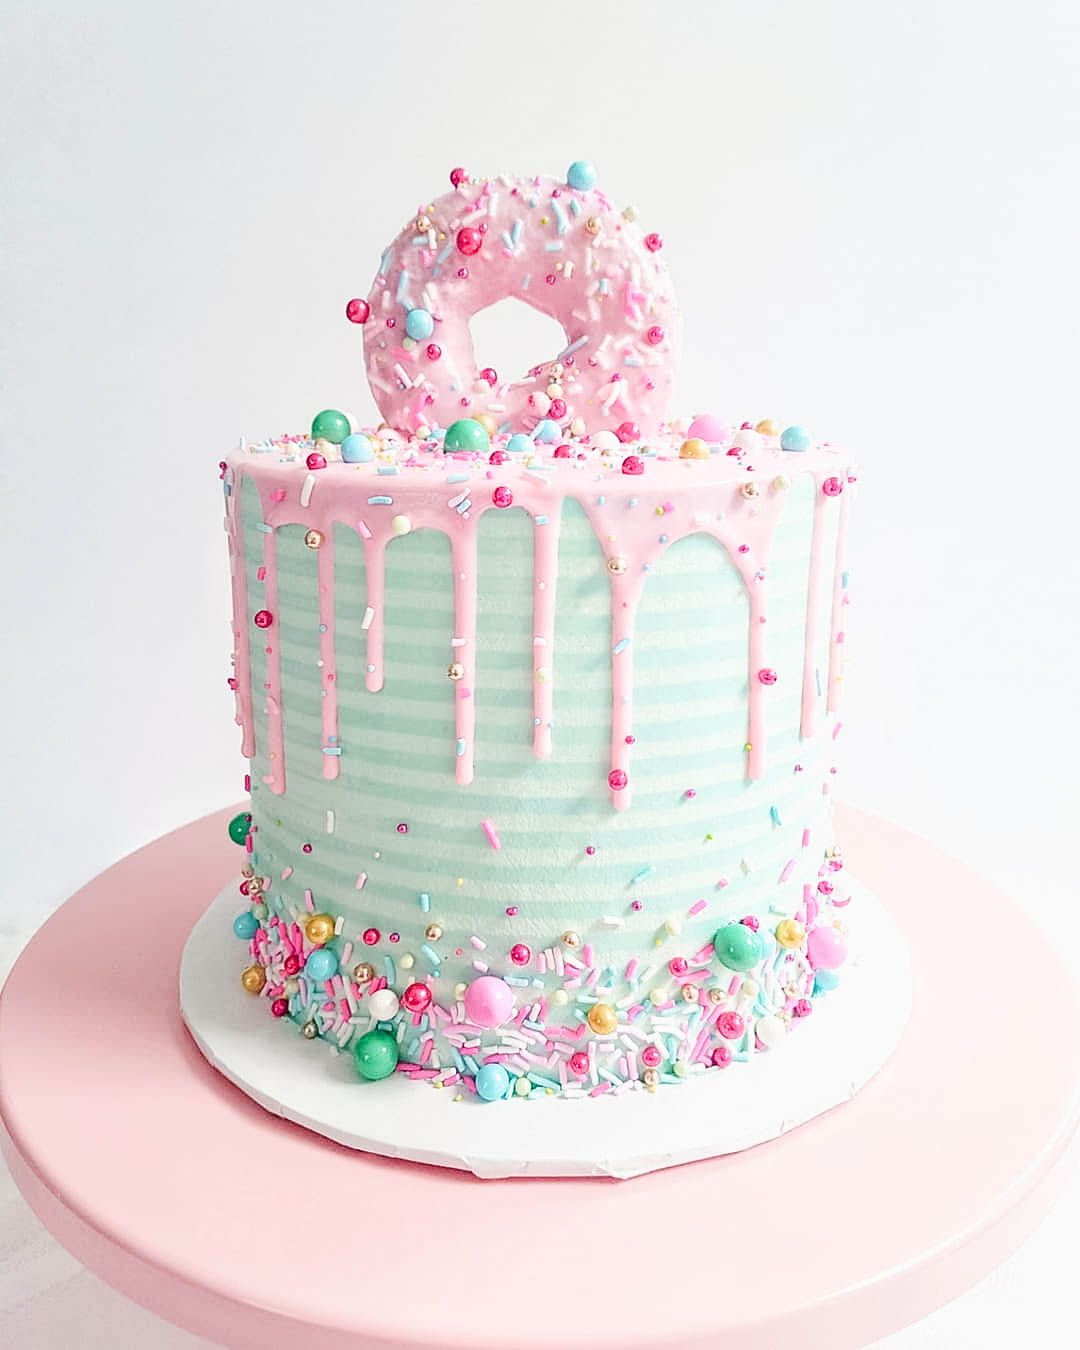 May Cake Decorator Spotlight - Find Your Cake Inspiration